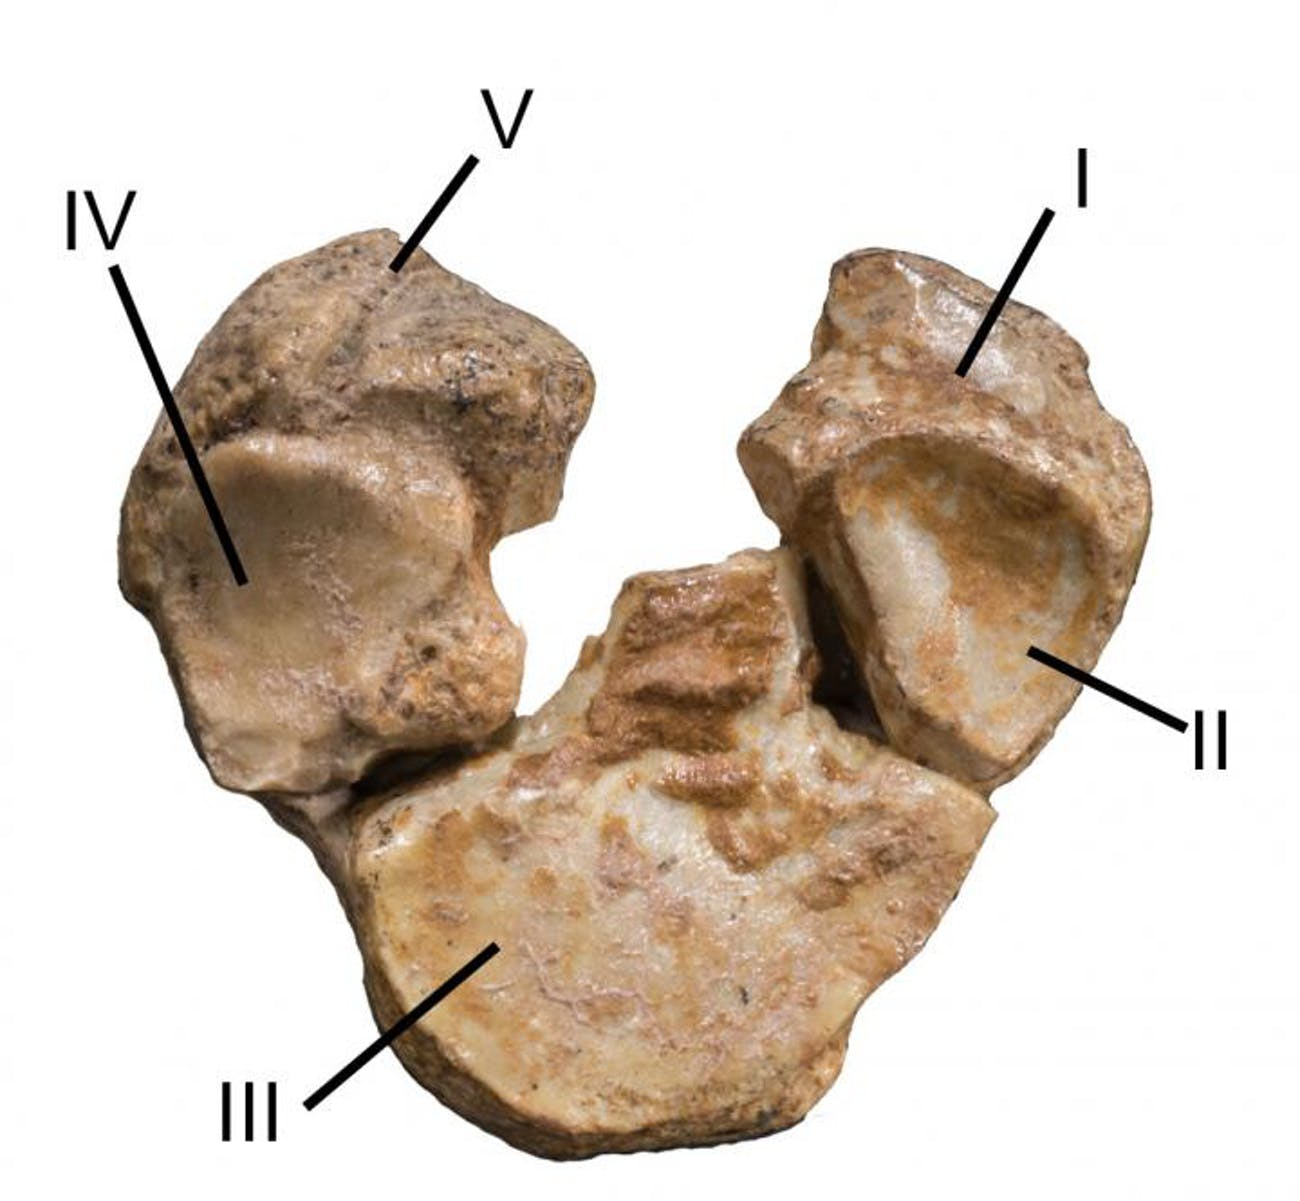 The bottom of this fossilized Mesohippus forelimb shows five different textures, suggesting remnants of five toes.